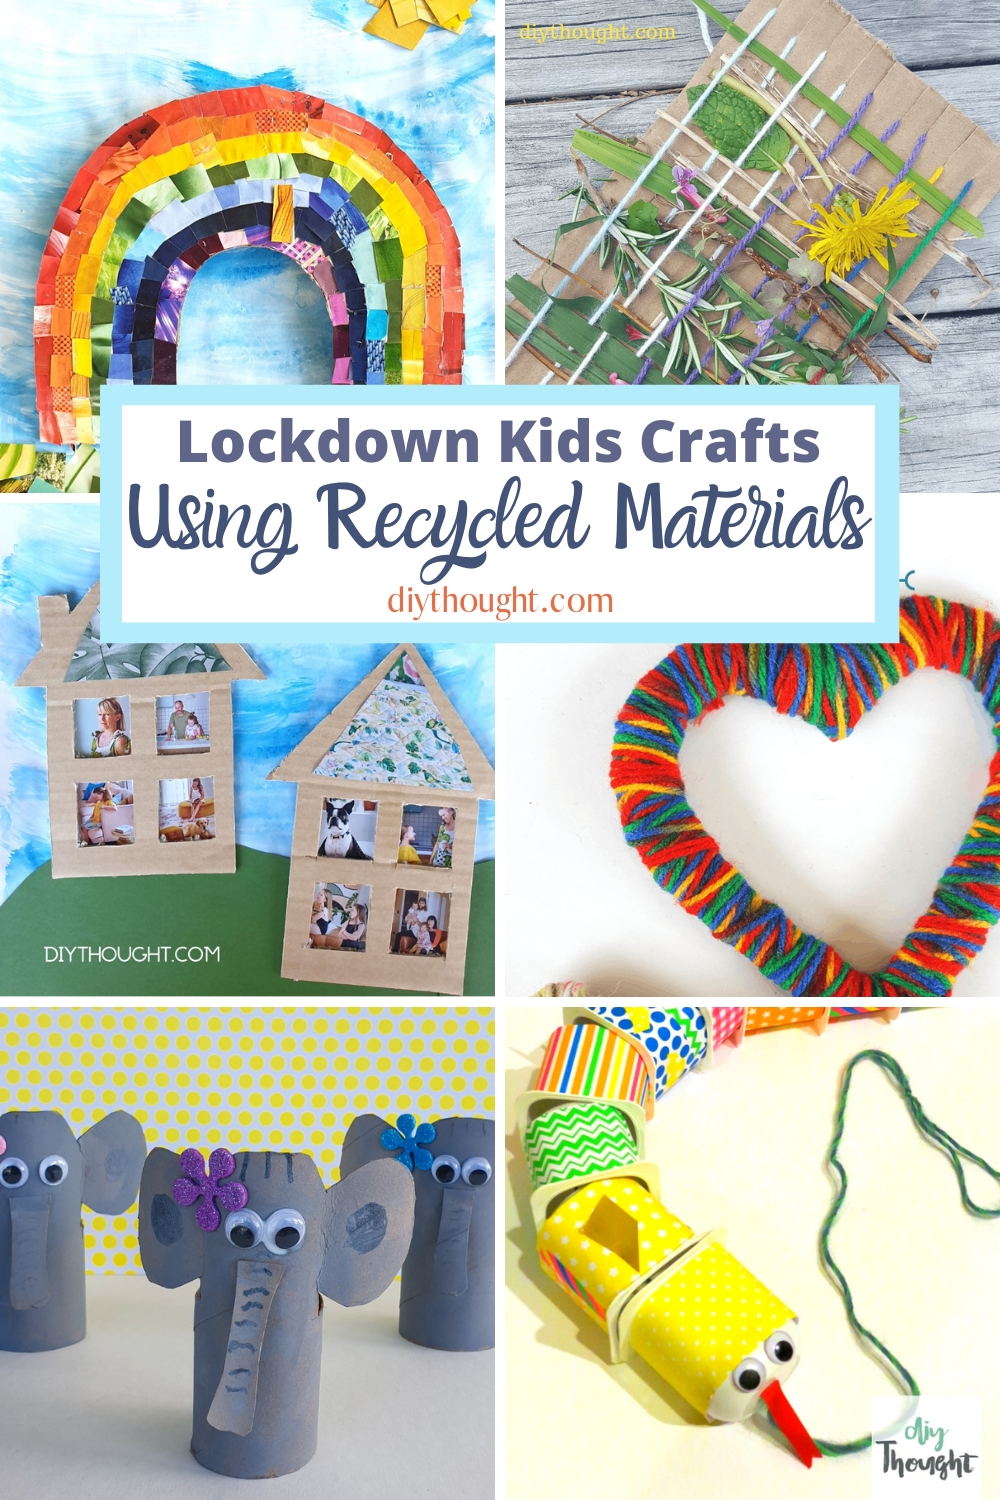 lockdown kids crafts using recycled materials